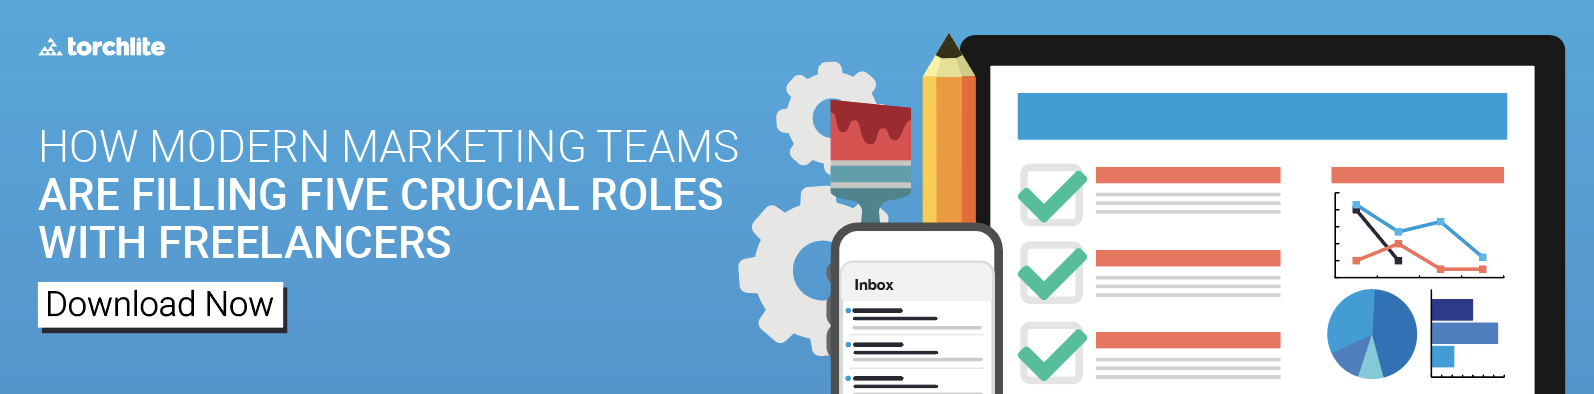 Modern Marketing Teams are Filling Crucial Roles with Freelancers. Download E-Book Now